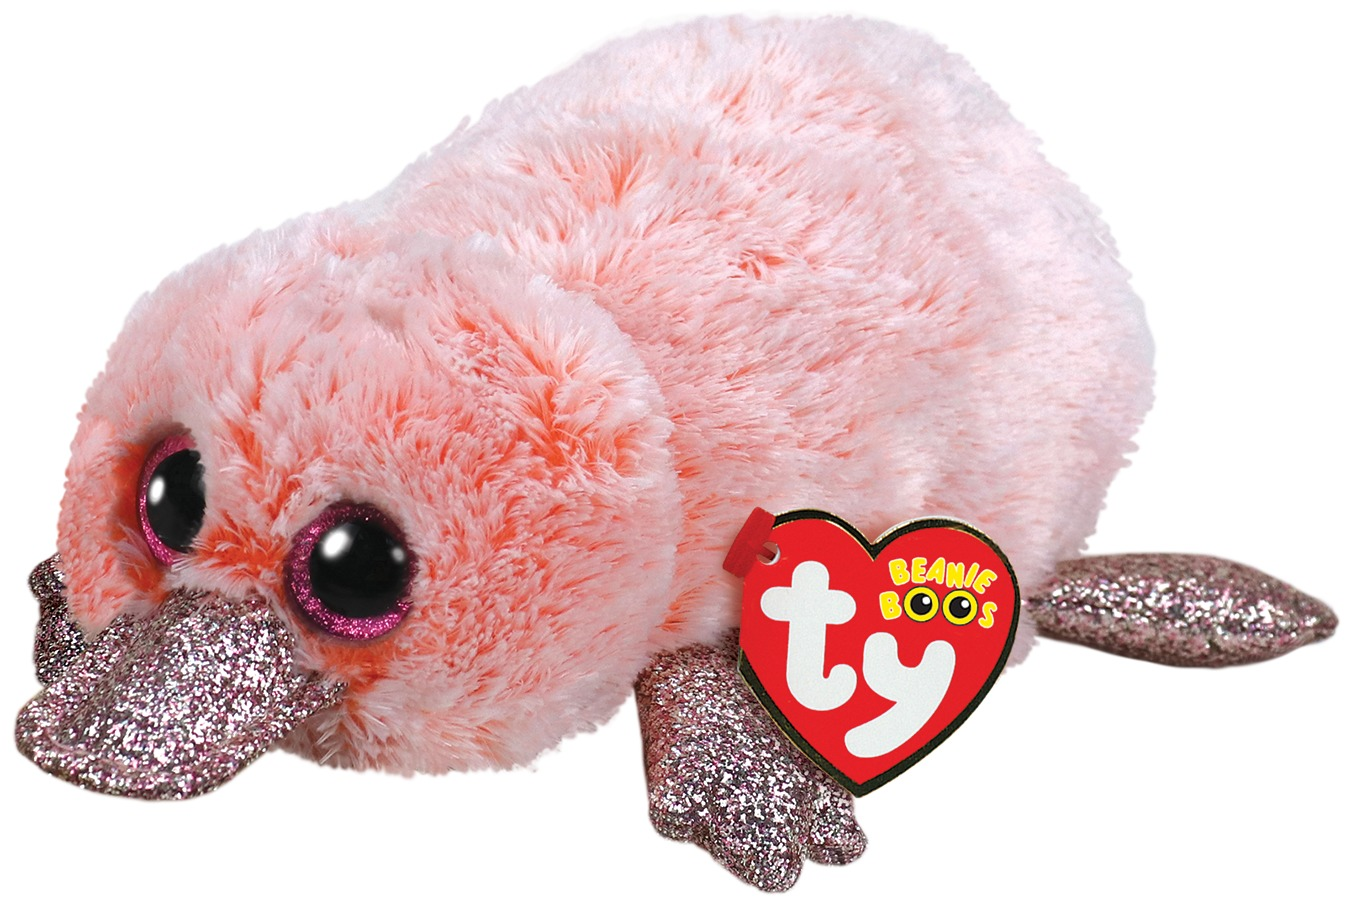 99b80d73a7b Ty Beanie Boo  Pink Platypus - Small Plush image